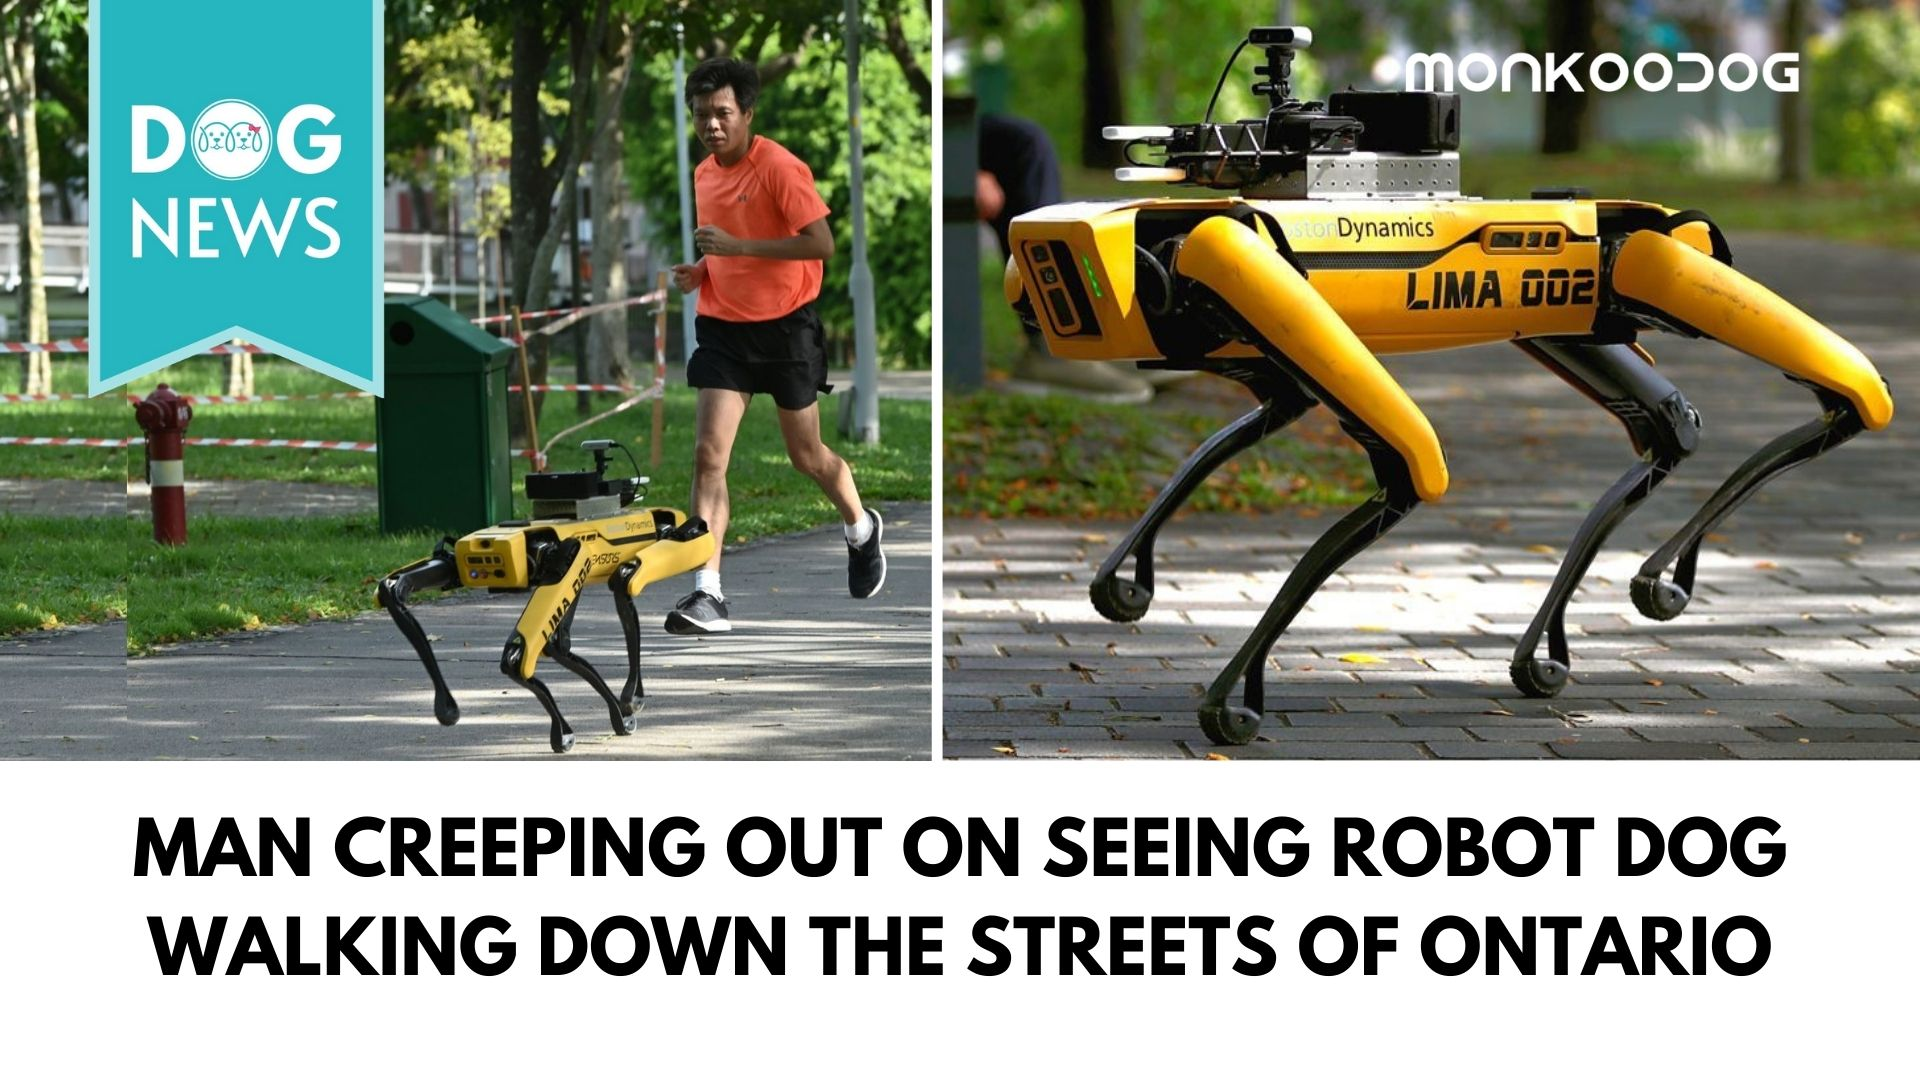 Video of a man creeping out on seeing robot Dog walking down the streets of Ontario goes viral